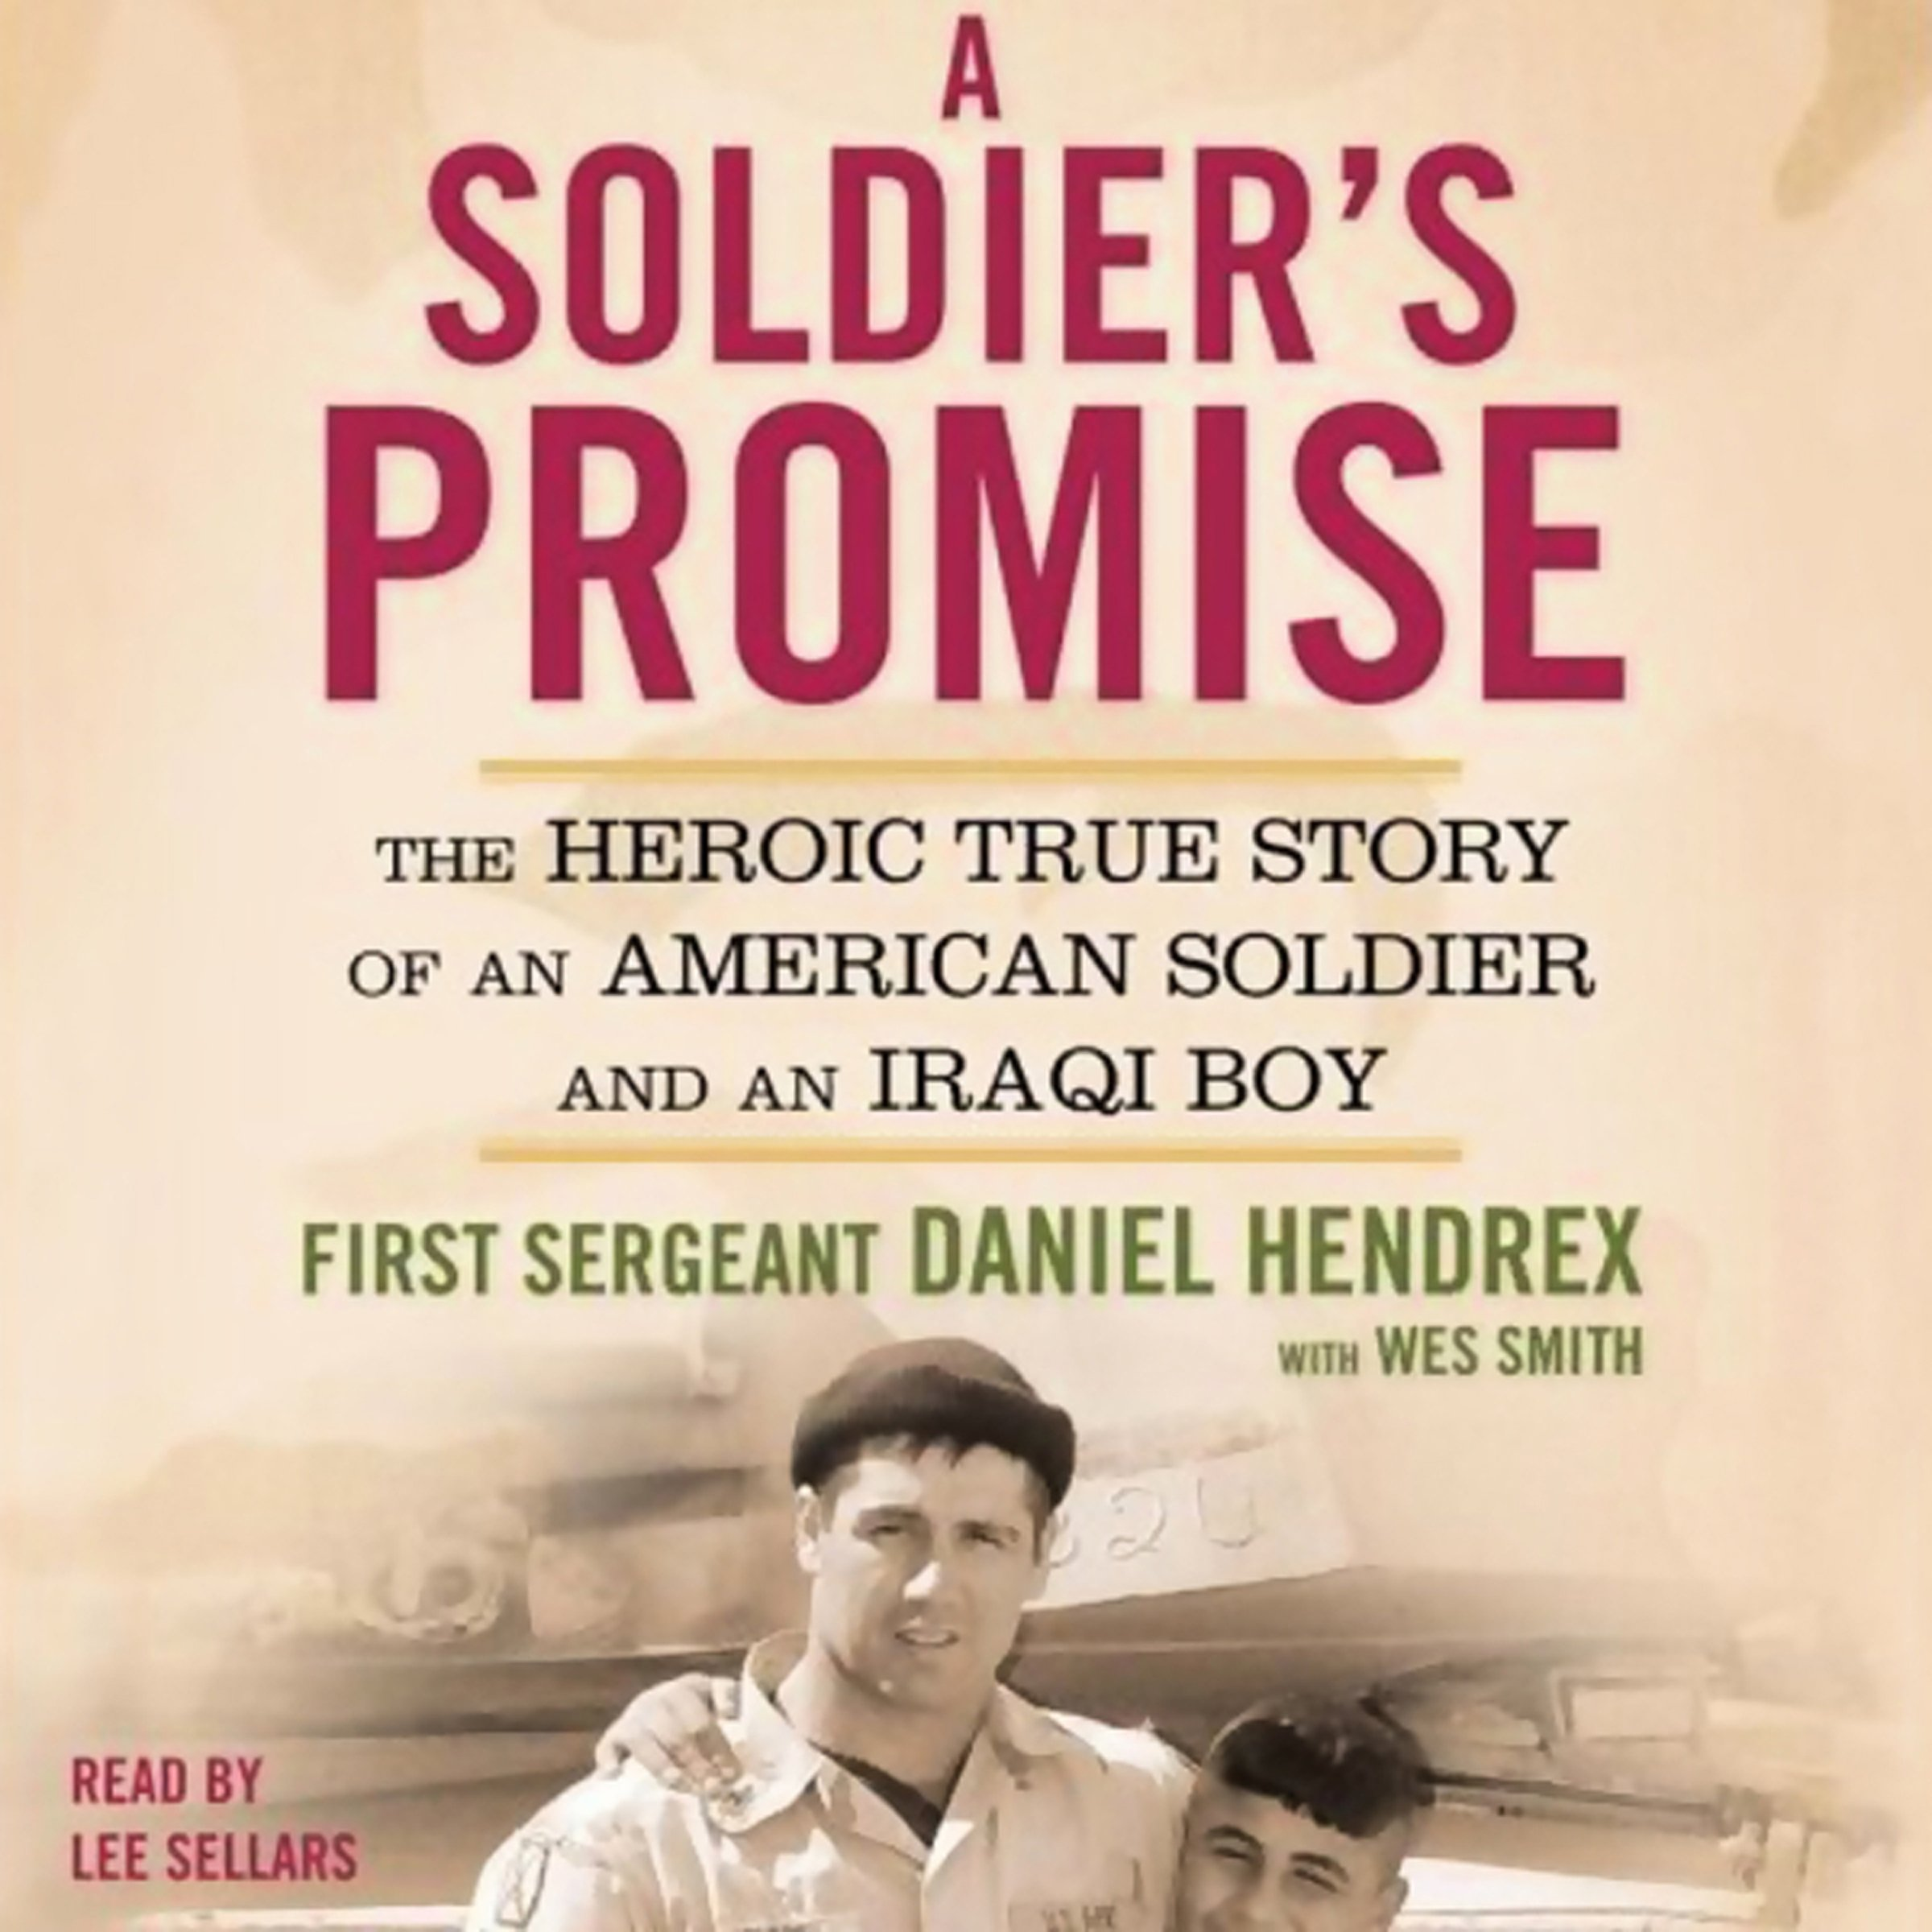 A Soldier's Promise: The Heroic True Story of an American Soldier and an Iraqi Boy